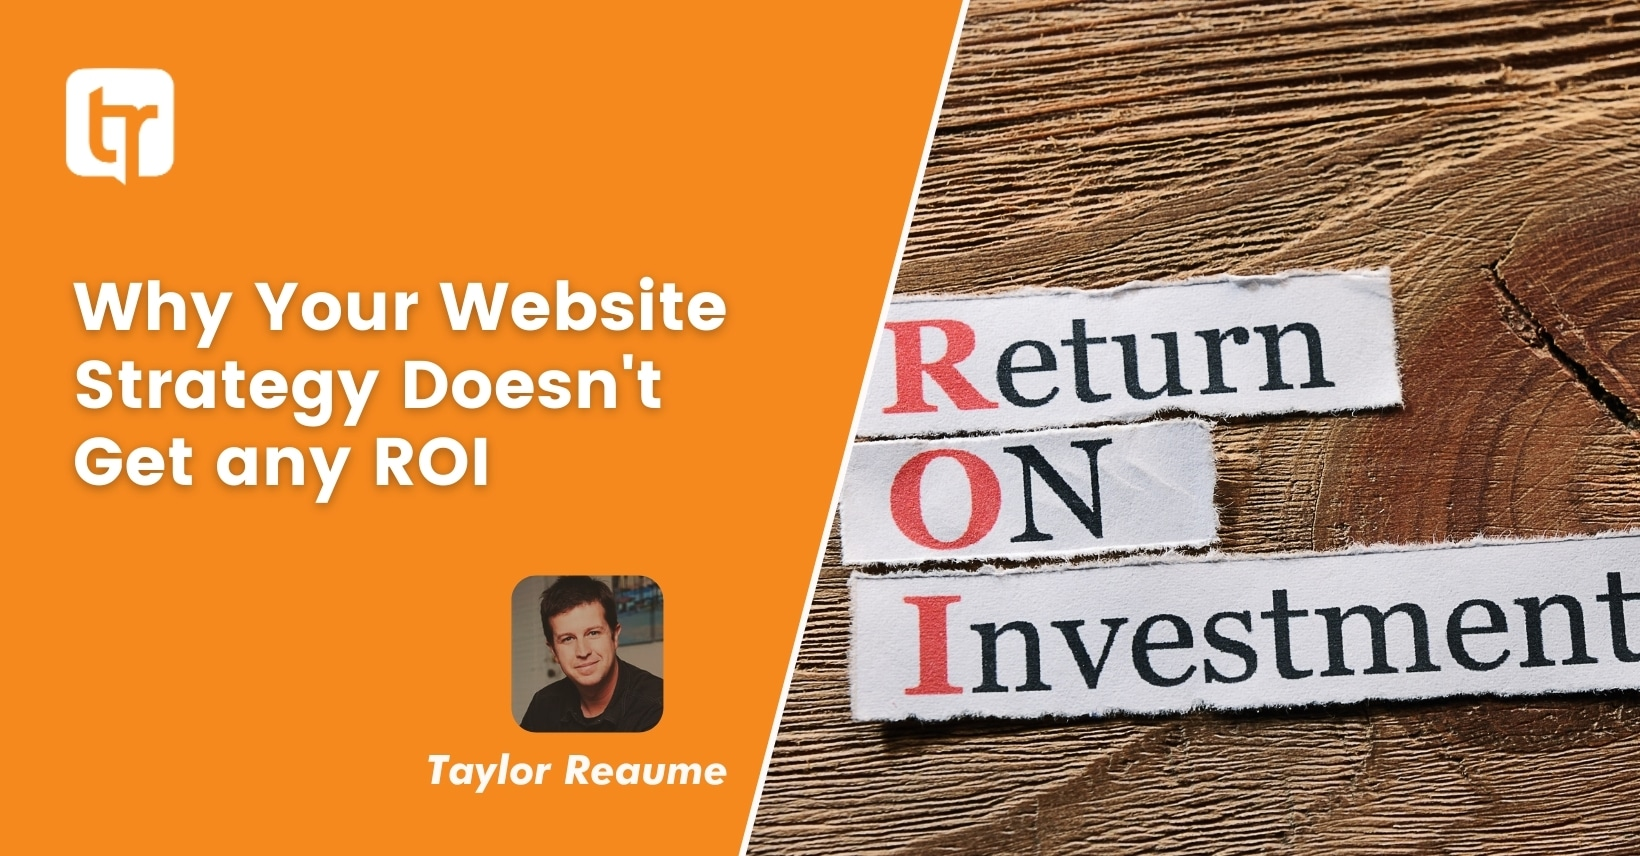 Why Your Website Strategy Doesn't Get any ROI